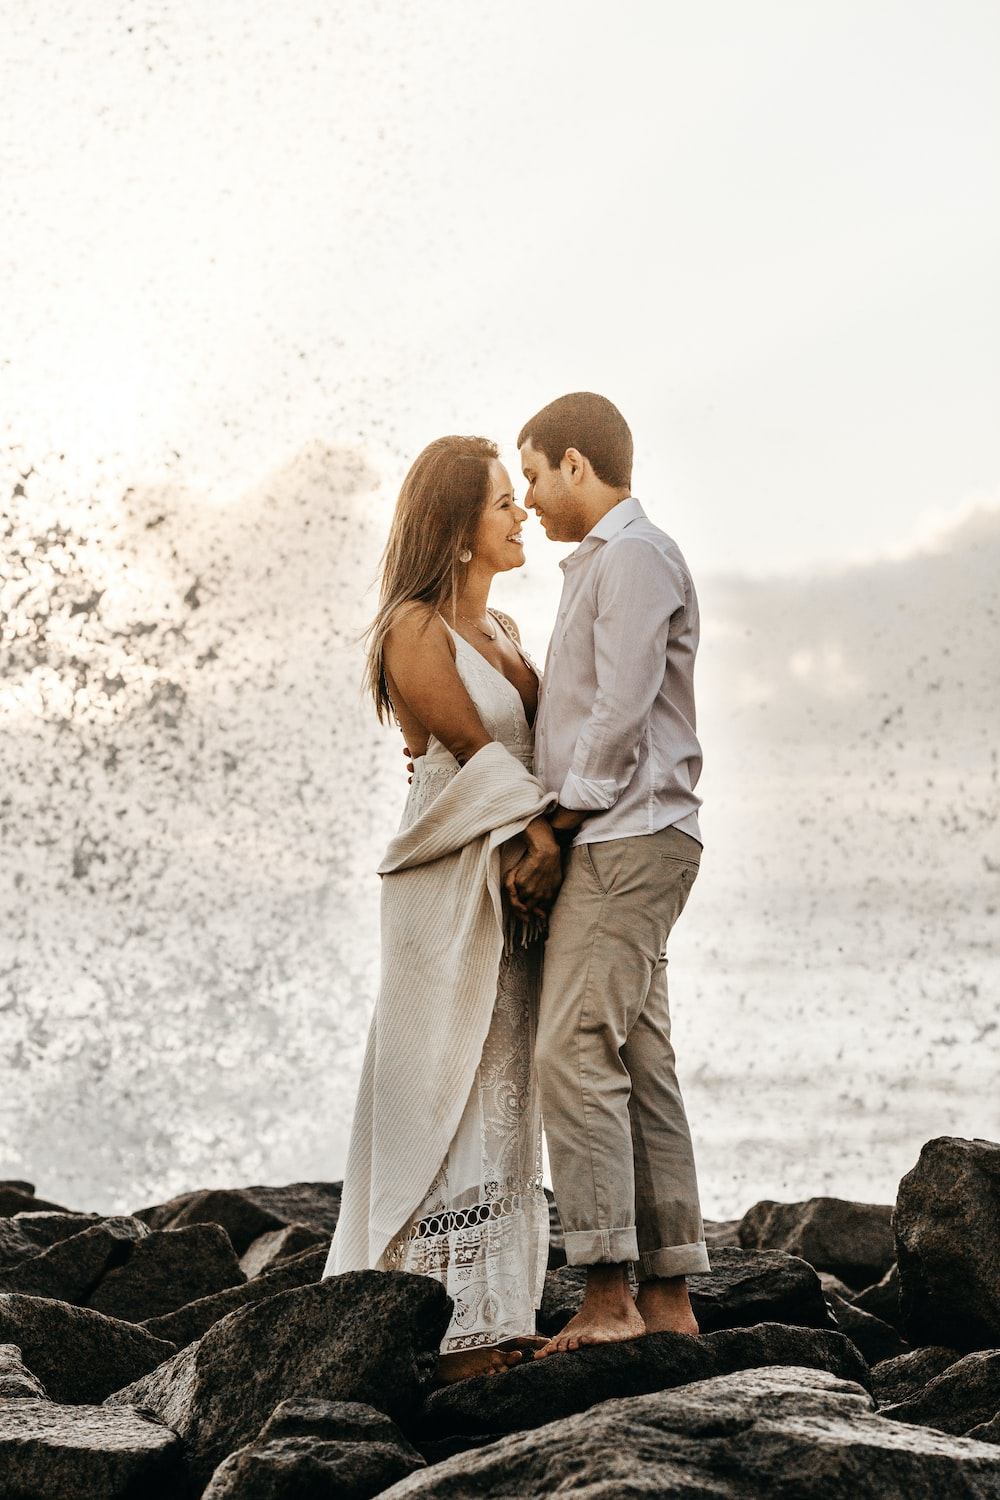 man and woman facing each other while standing on rock boulders in seashore